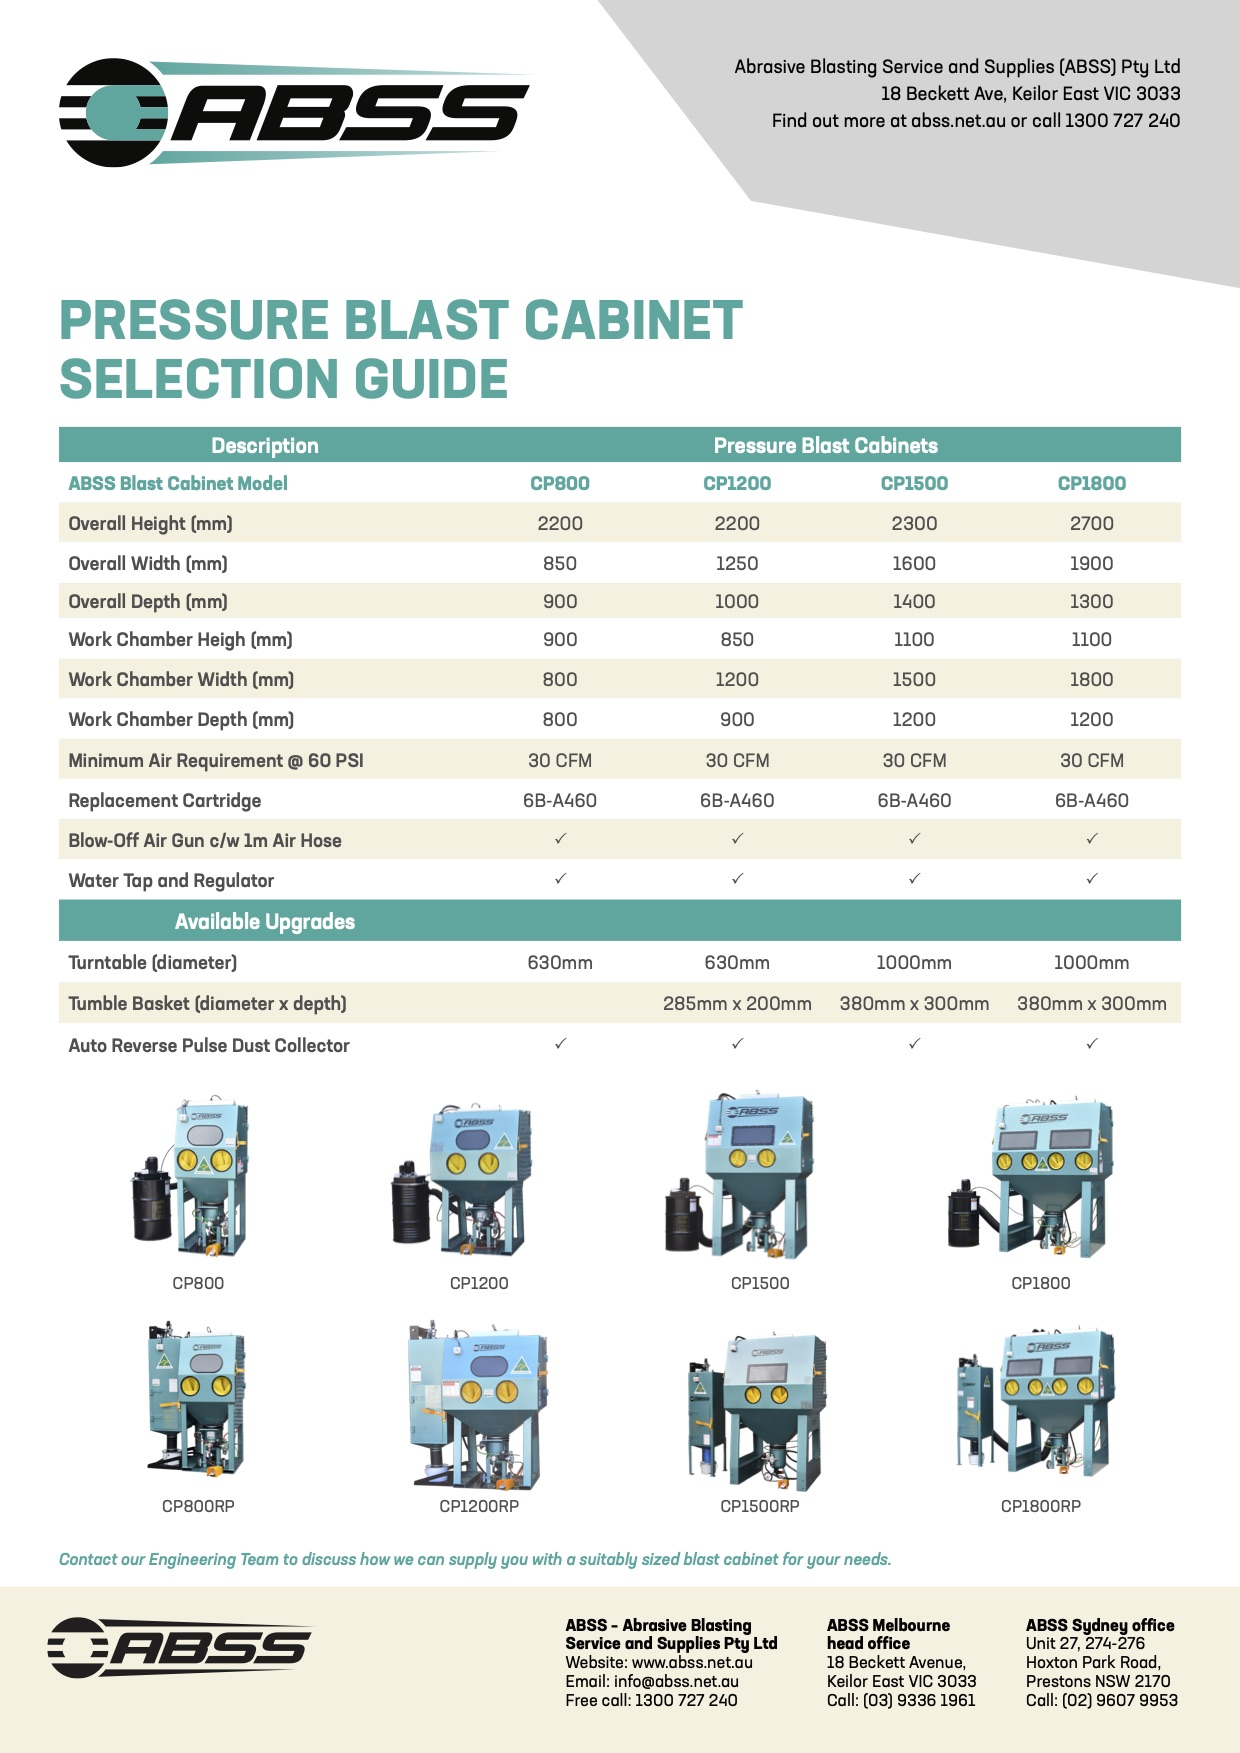 Pressure Cabinet Selection Guide 200825 ABSS Brochures A4 V2